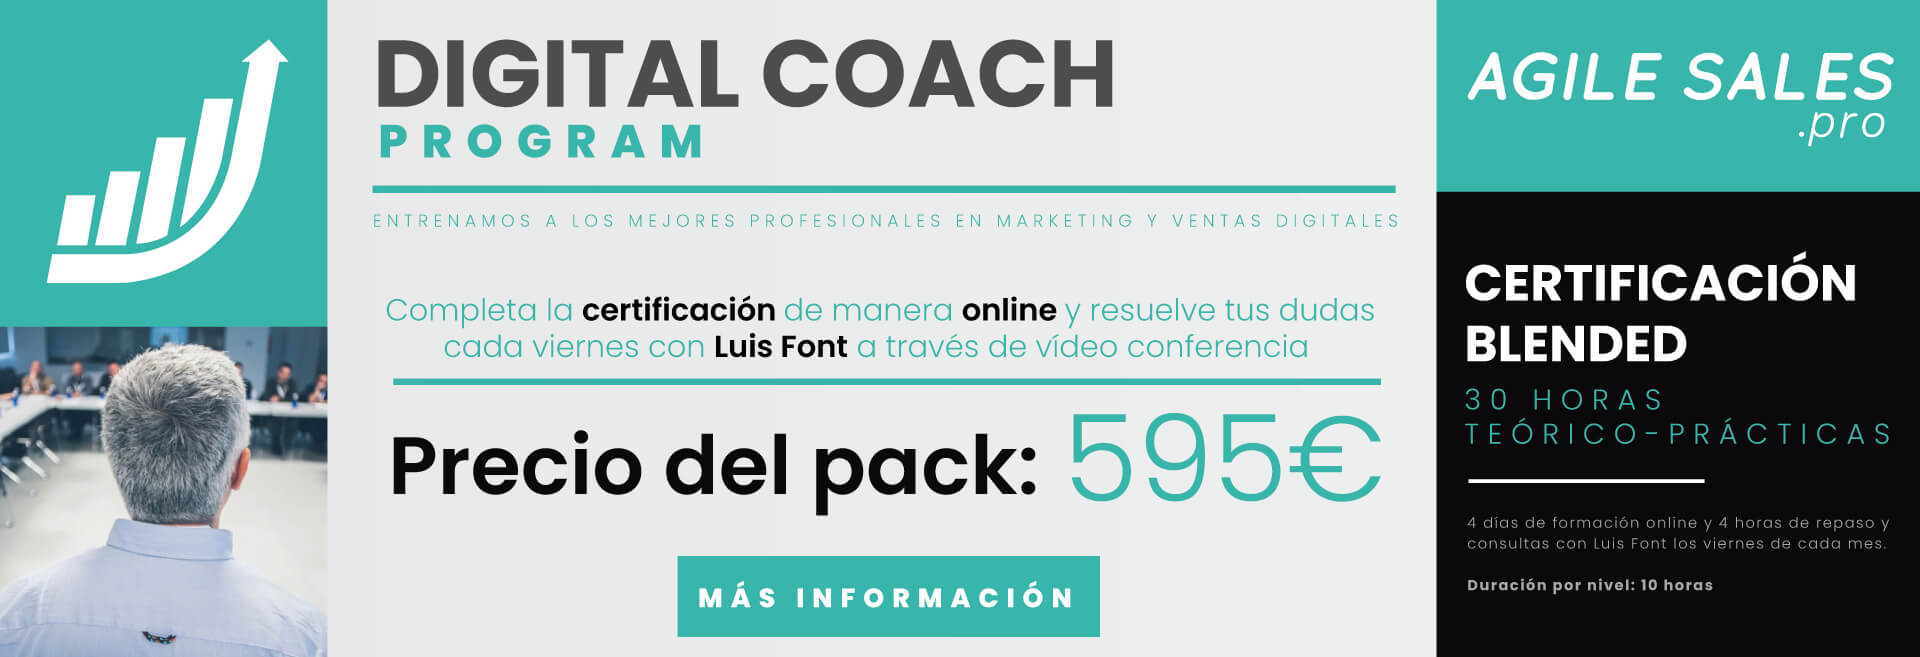 slider_digital_coach_v2